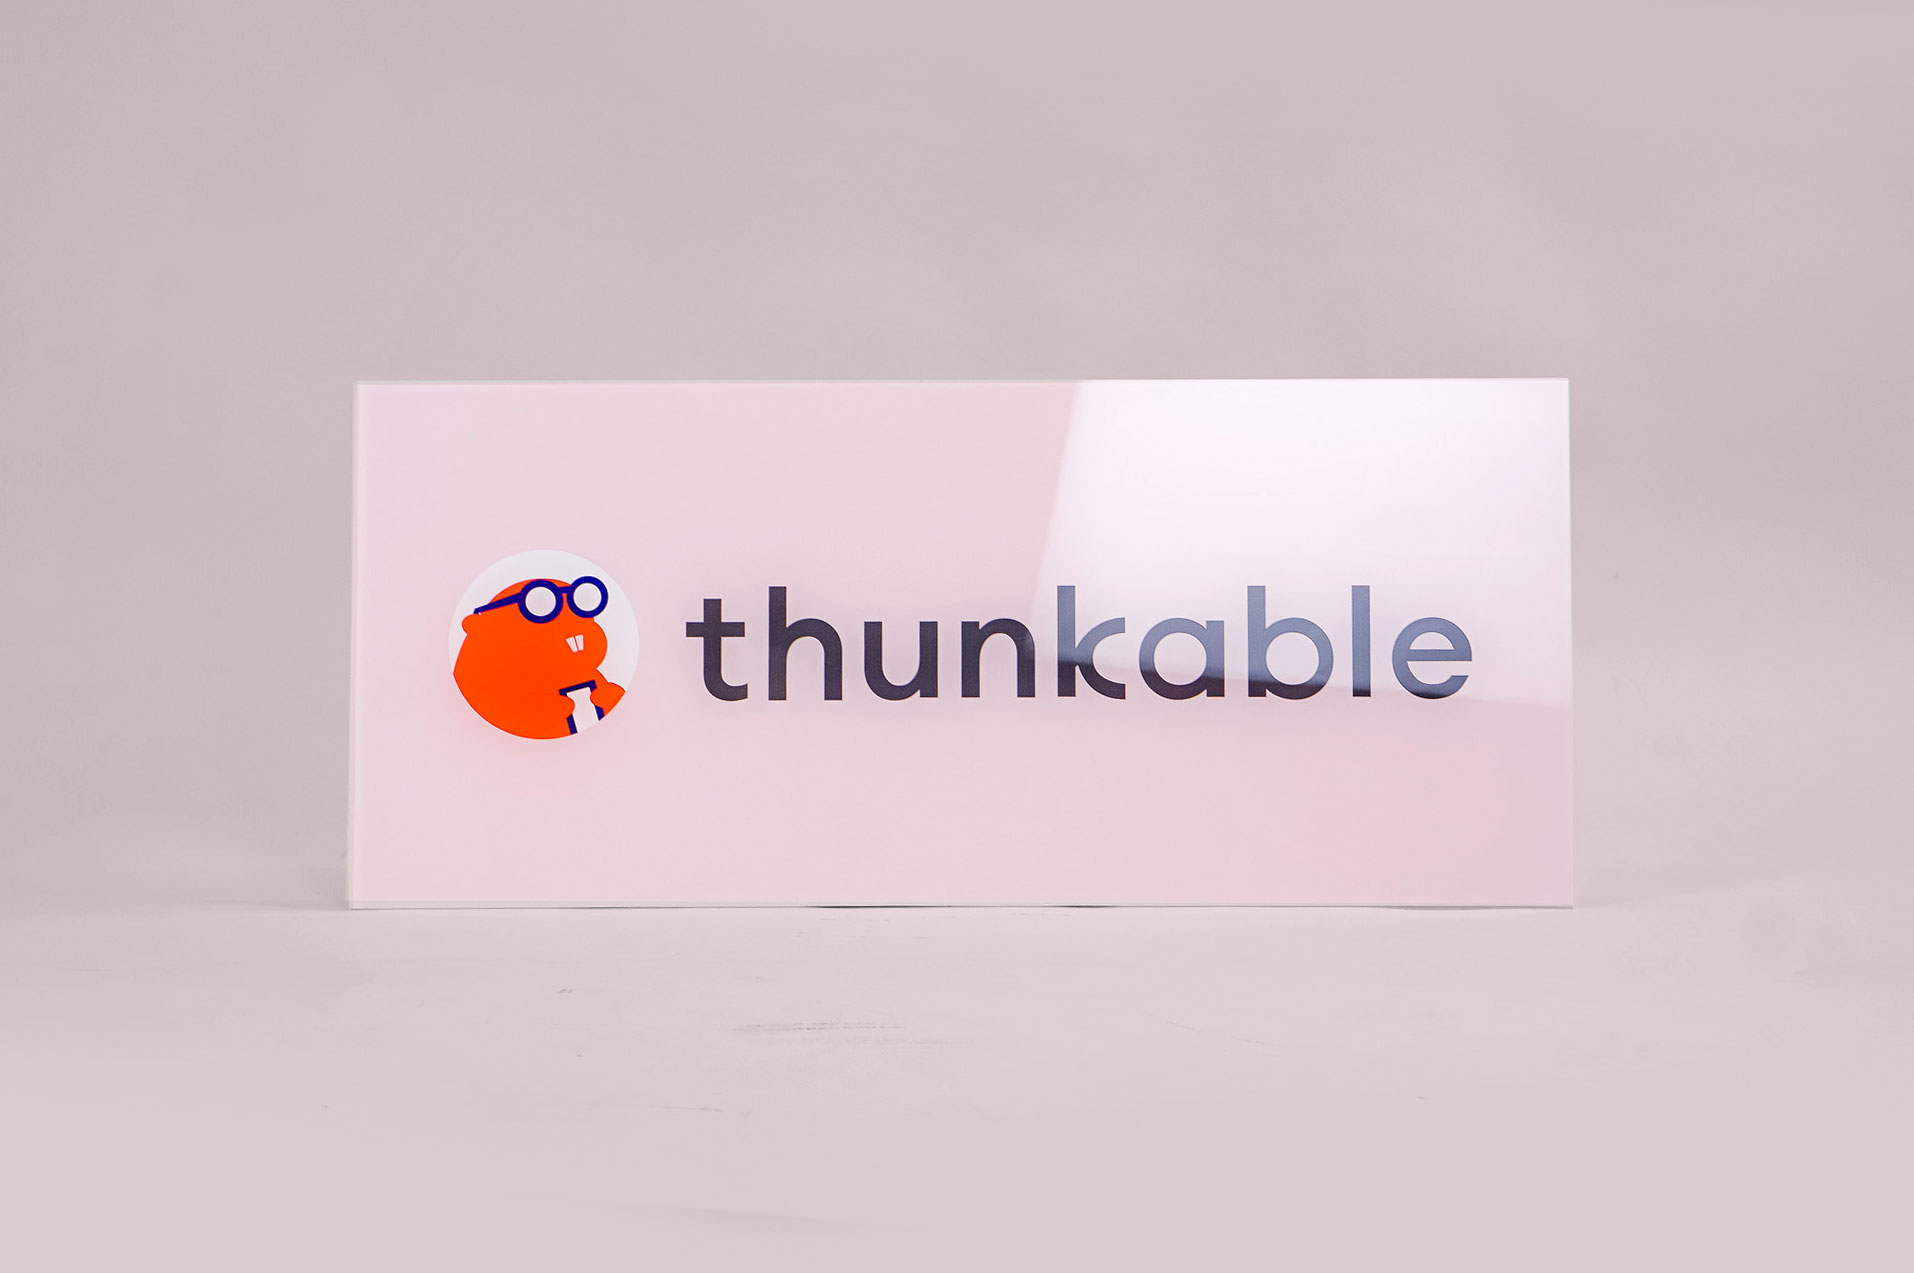 Glass-like, pale pink back printed sign for Thunkable, a cross-platform app builder that enables anyone to build their own native mobile apps.